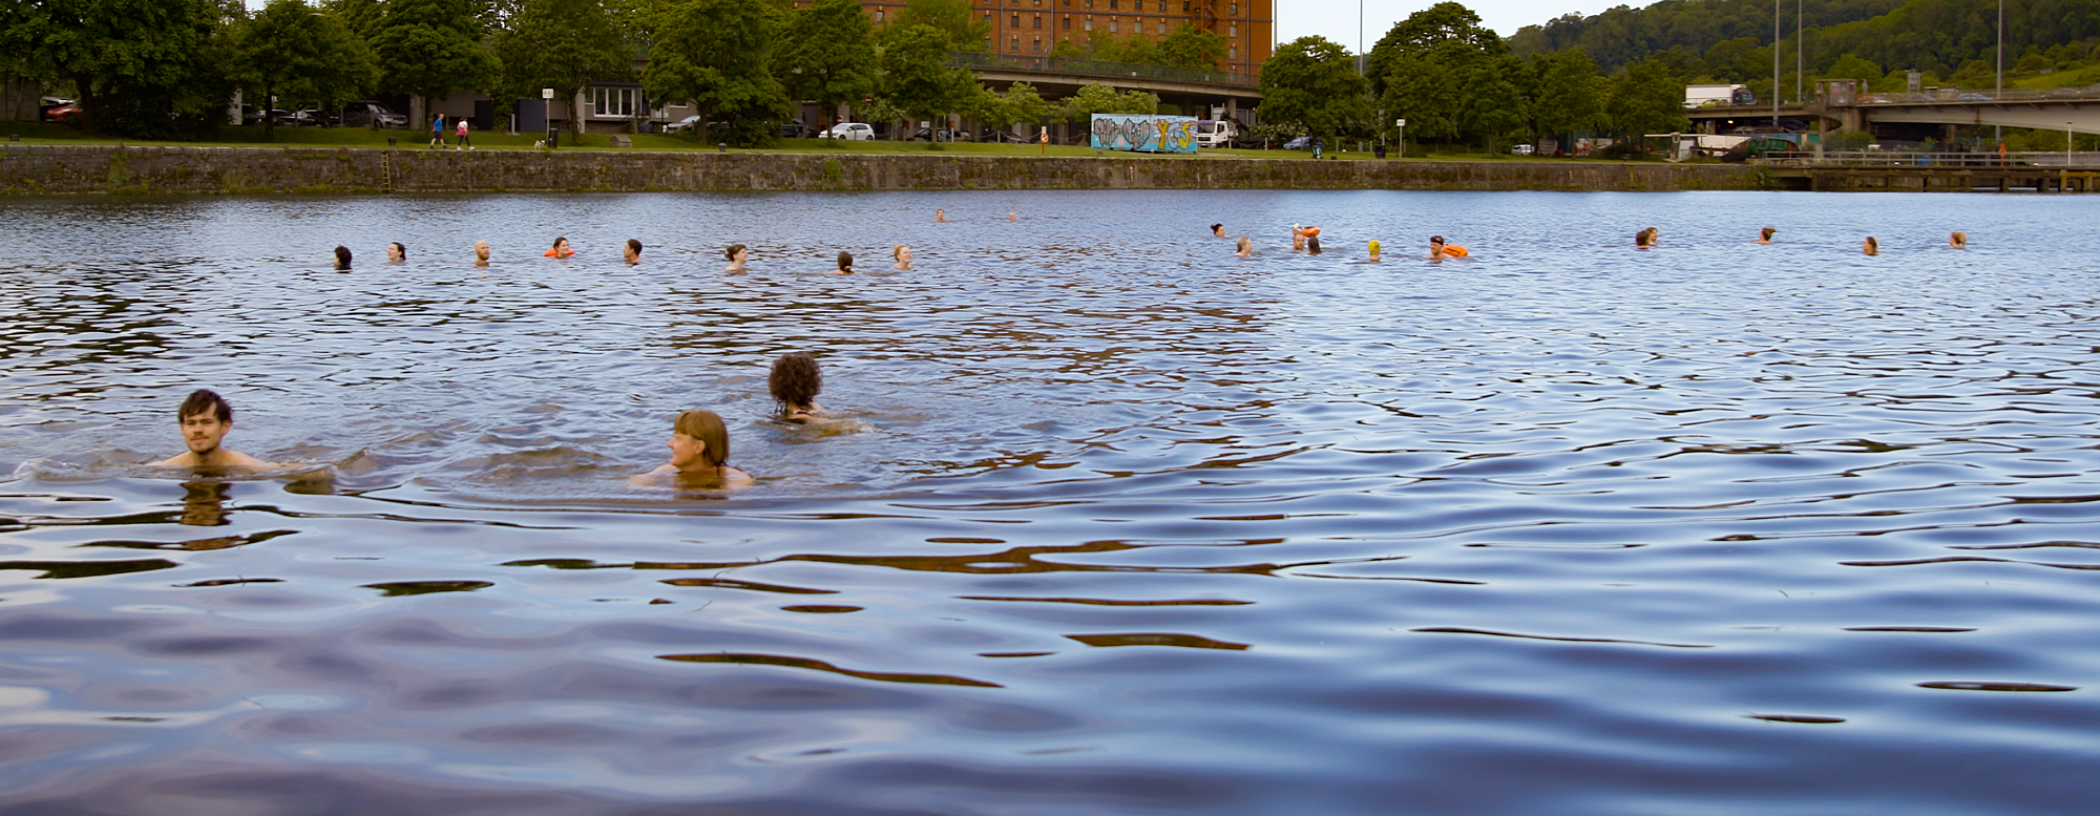 Swimmers in the water at Bristol Harbour as part of a floating protest